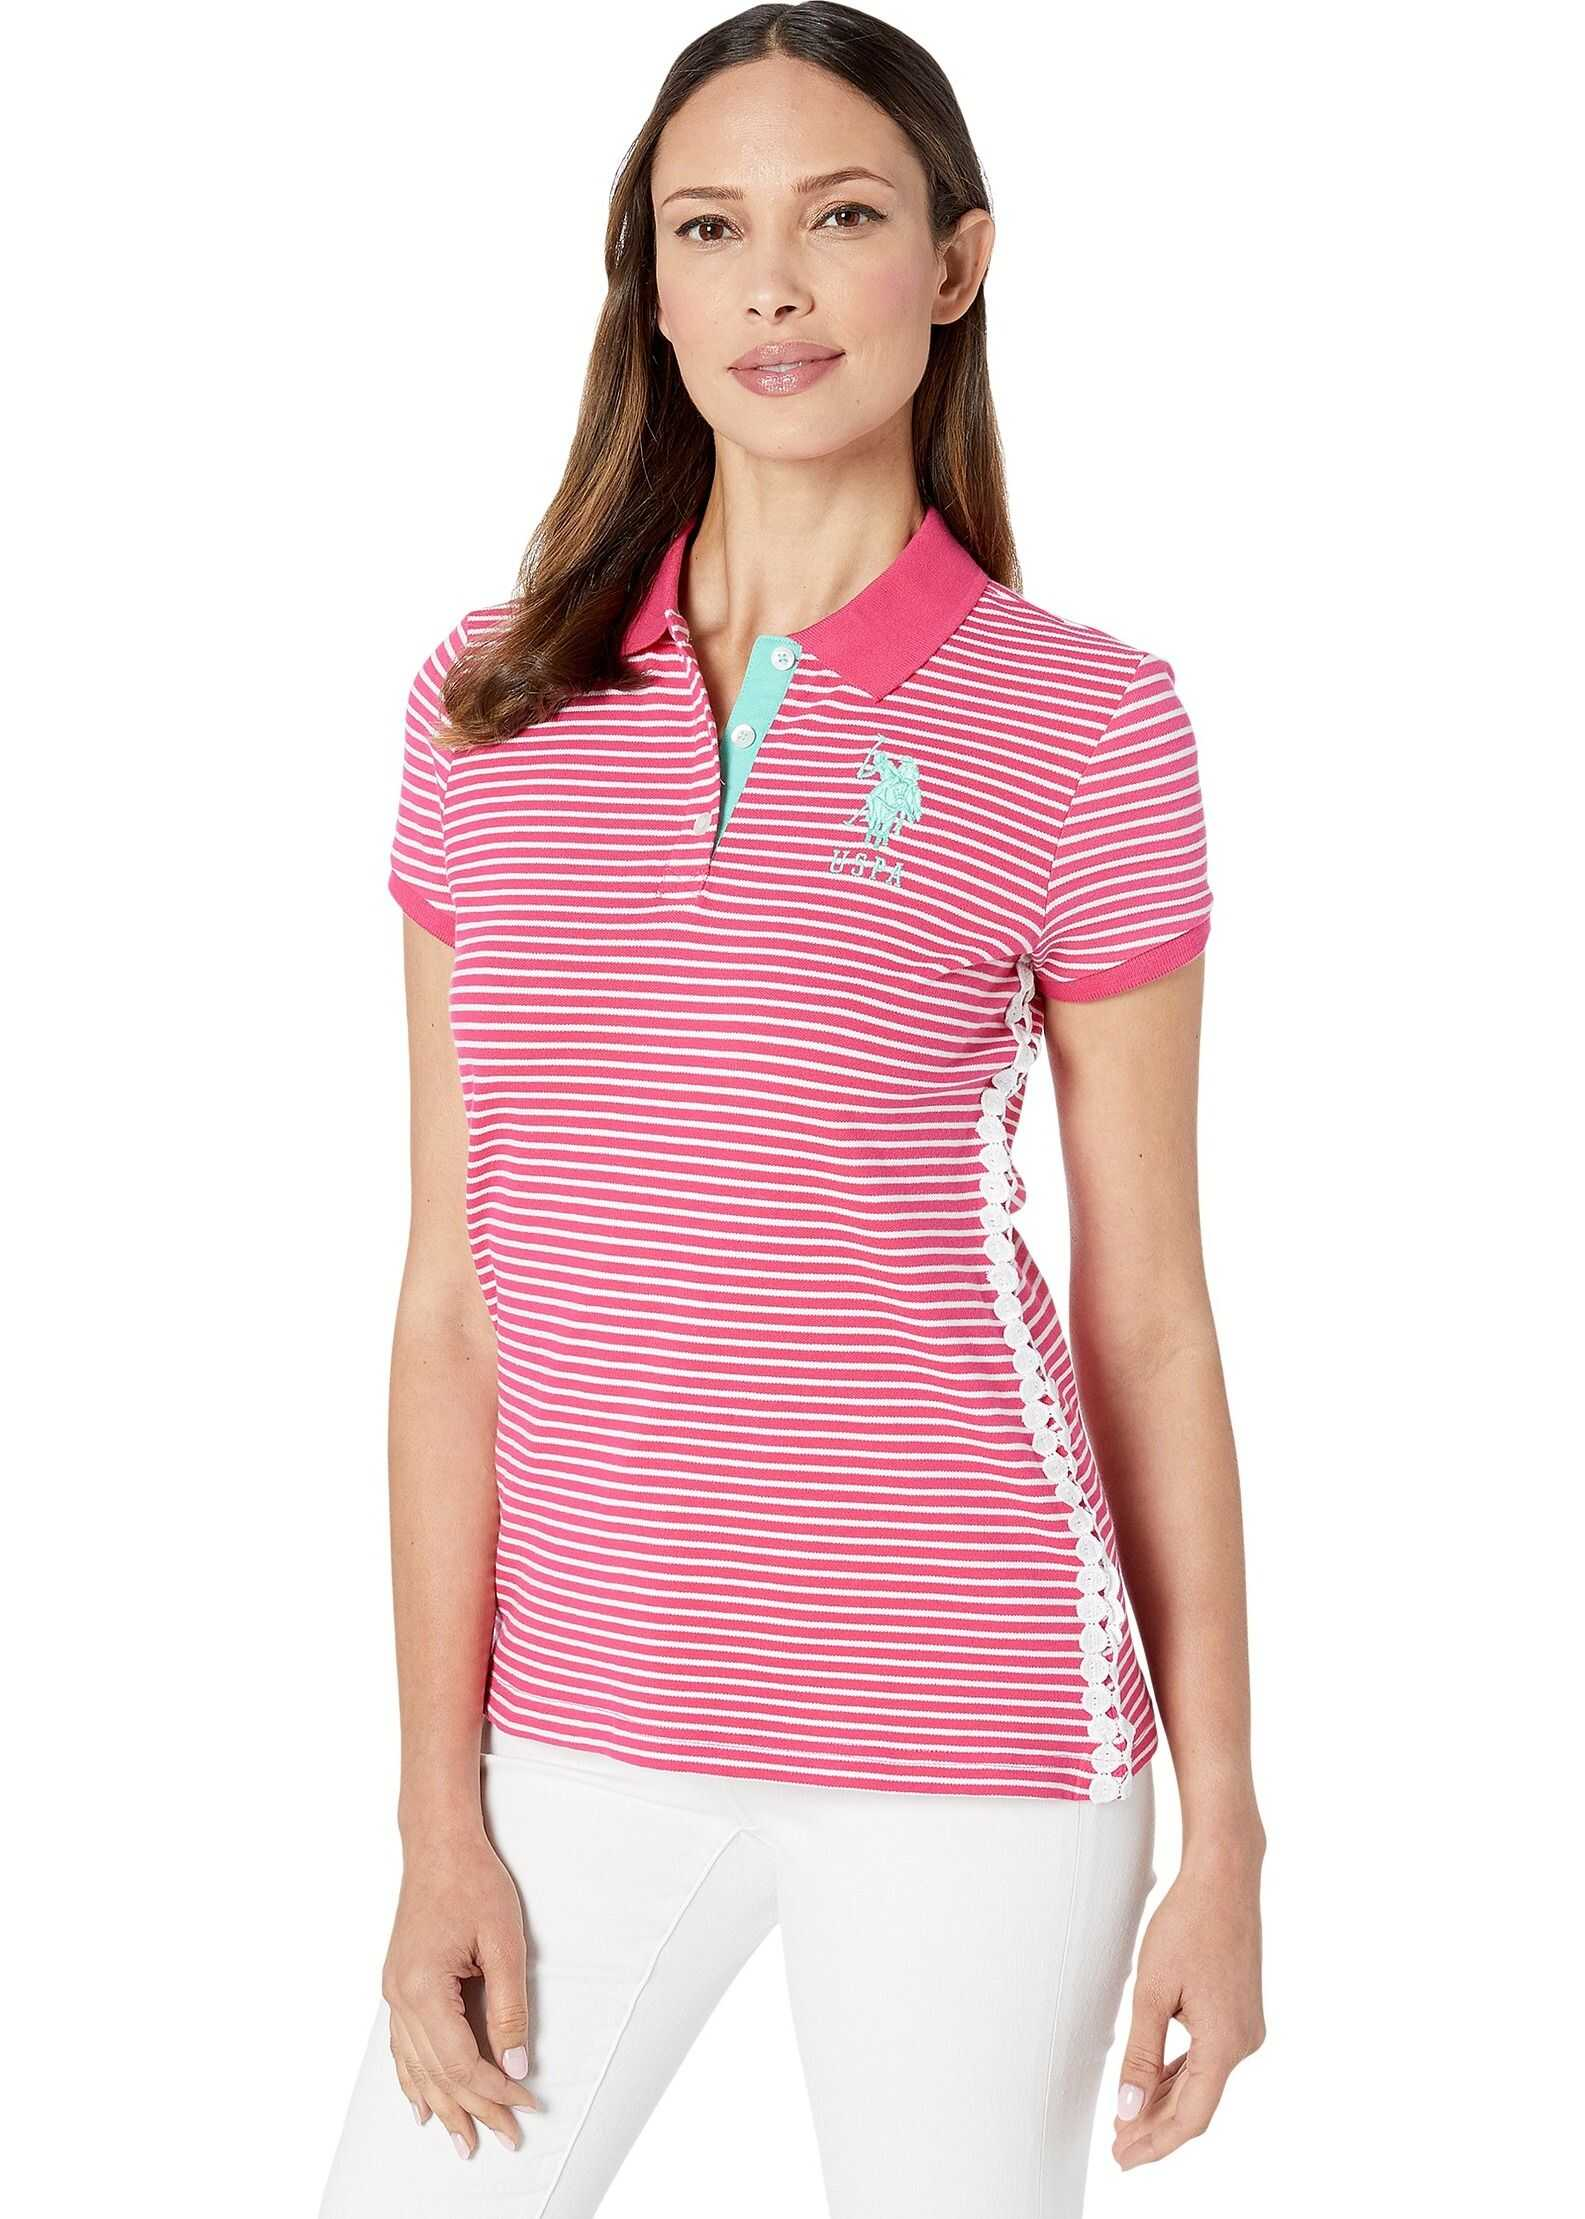 U.S. POLO ASSN. Stripe w/ Lace Side Polo Rose Tropical